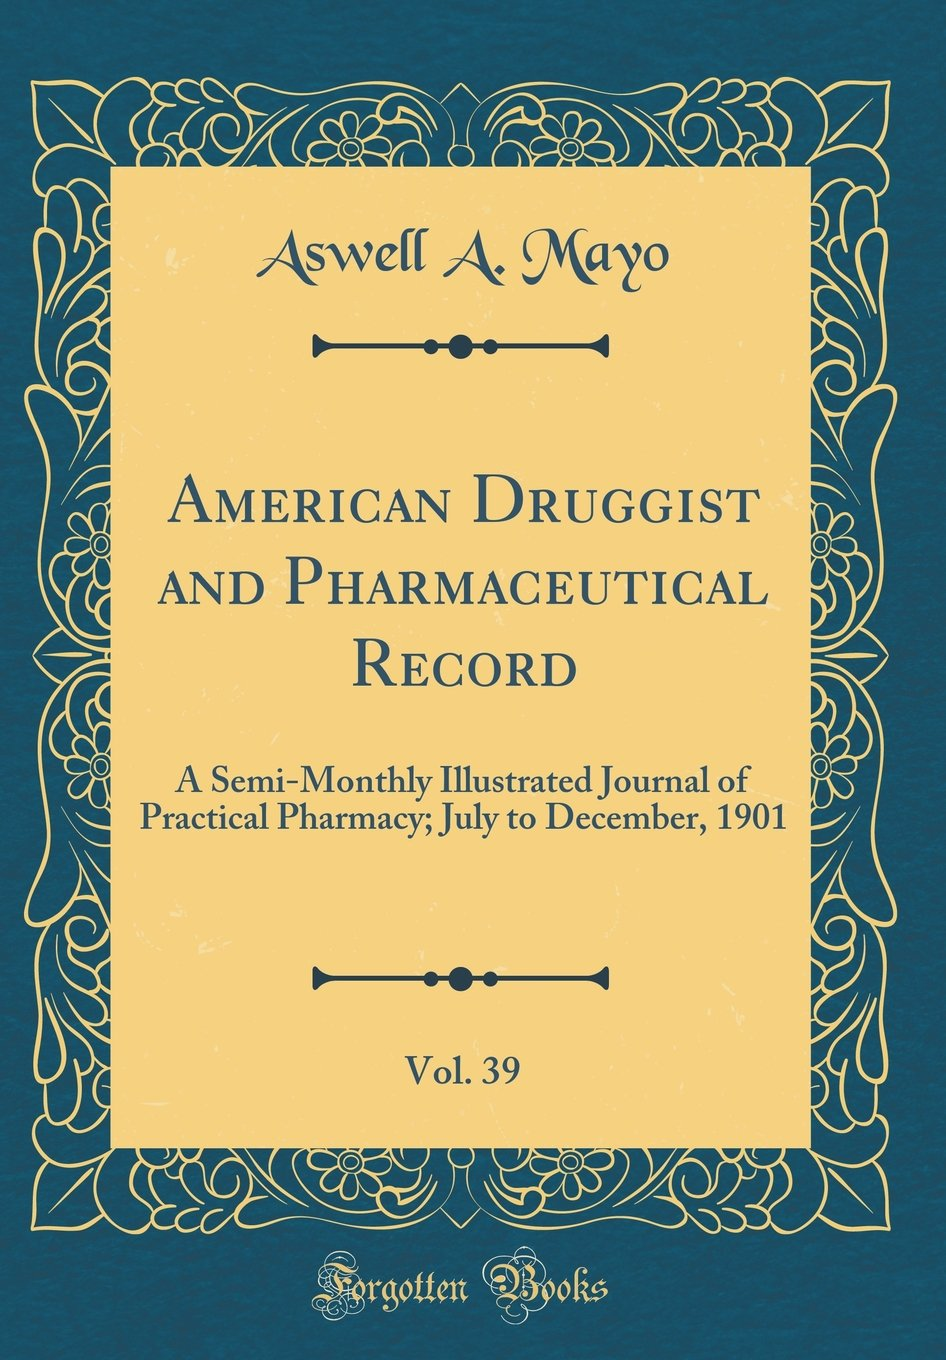 Read Online American Druggist and Pharmaceutical Record, Vol. 39: A Semi-Monthly Illustrated Journal of Practical Pharmacy; July to December, 1901 (Classic Reprint) PDF